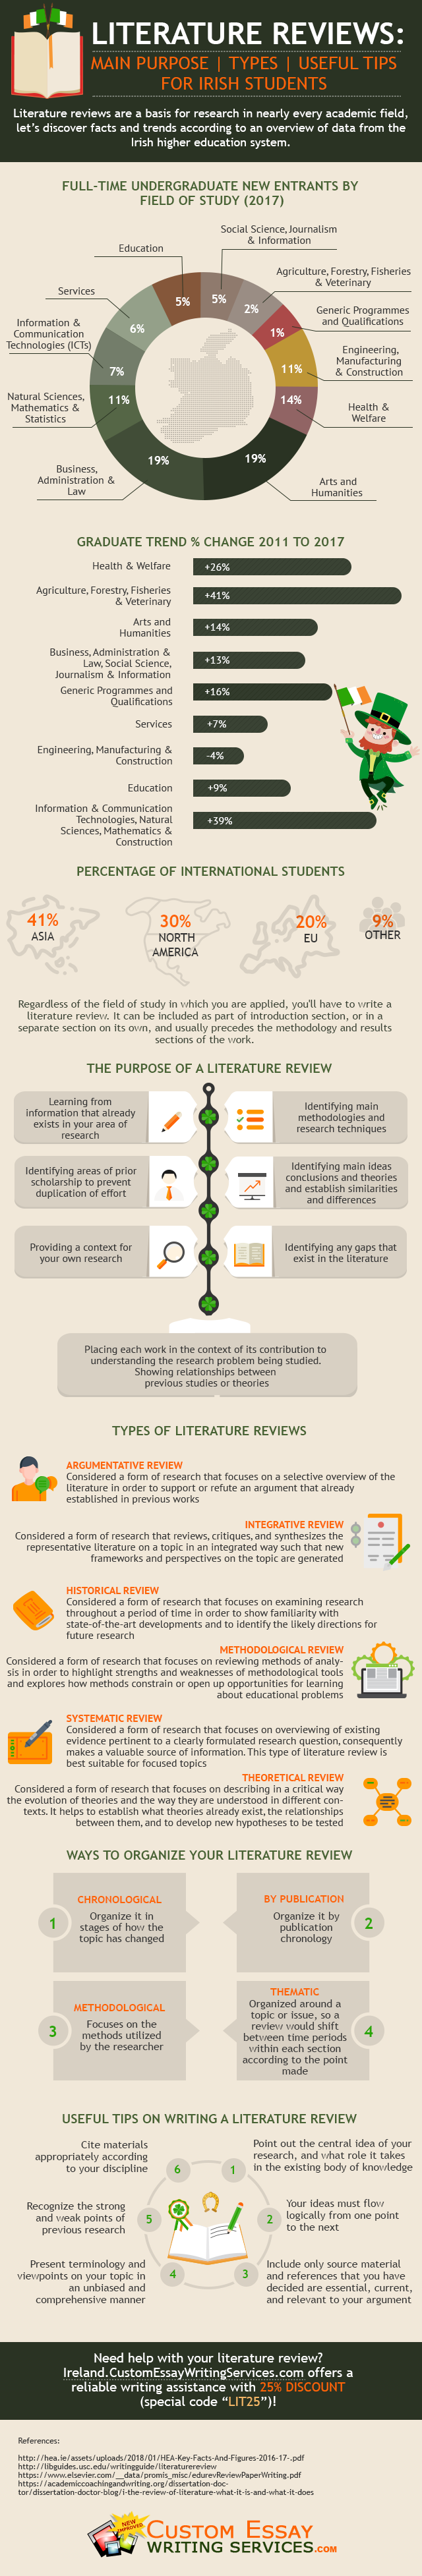 How to write an Irish literature review #infographic